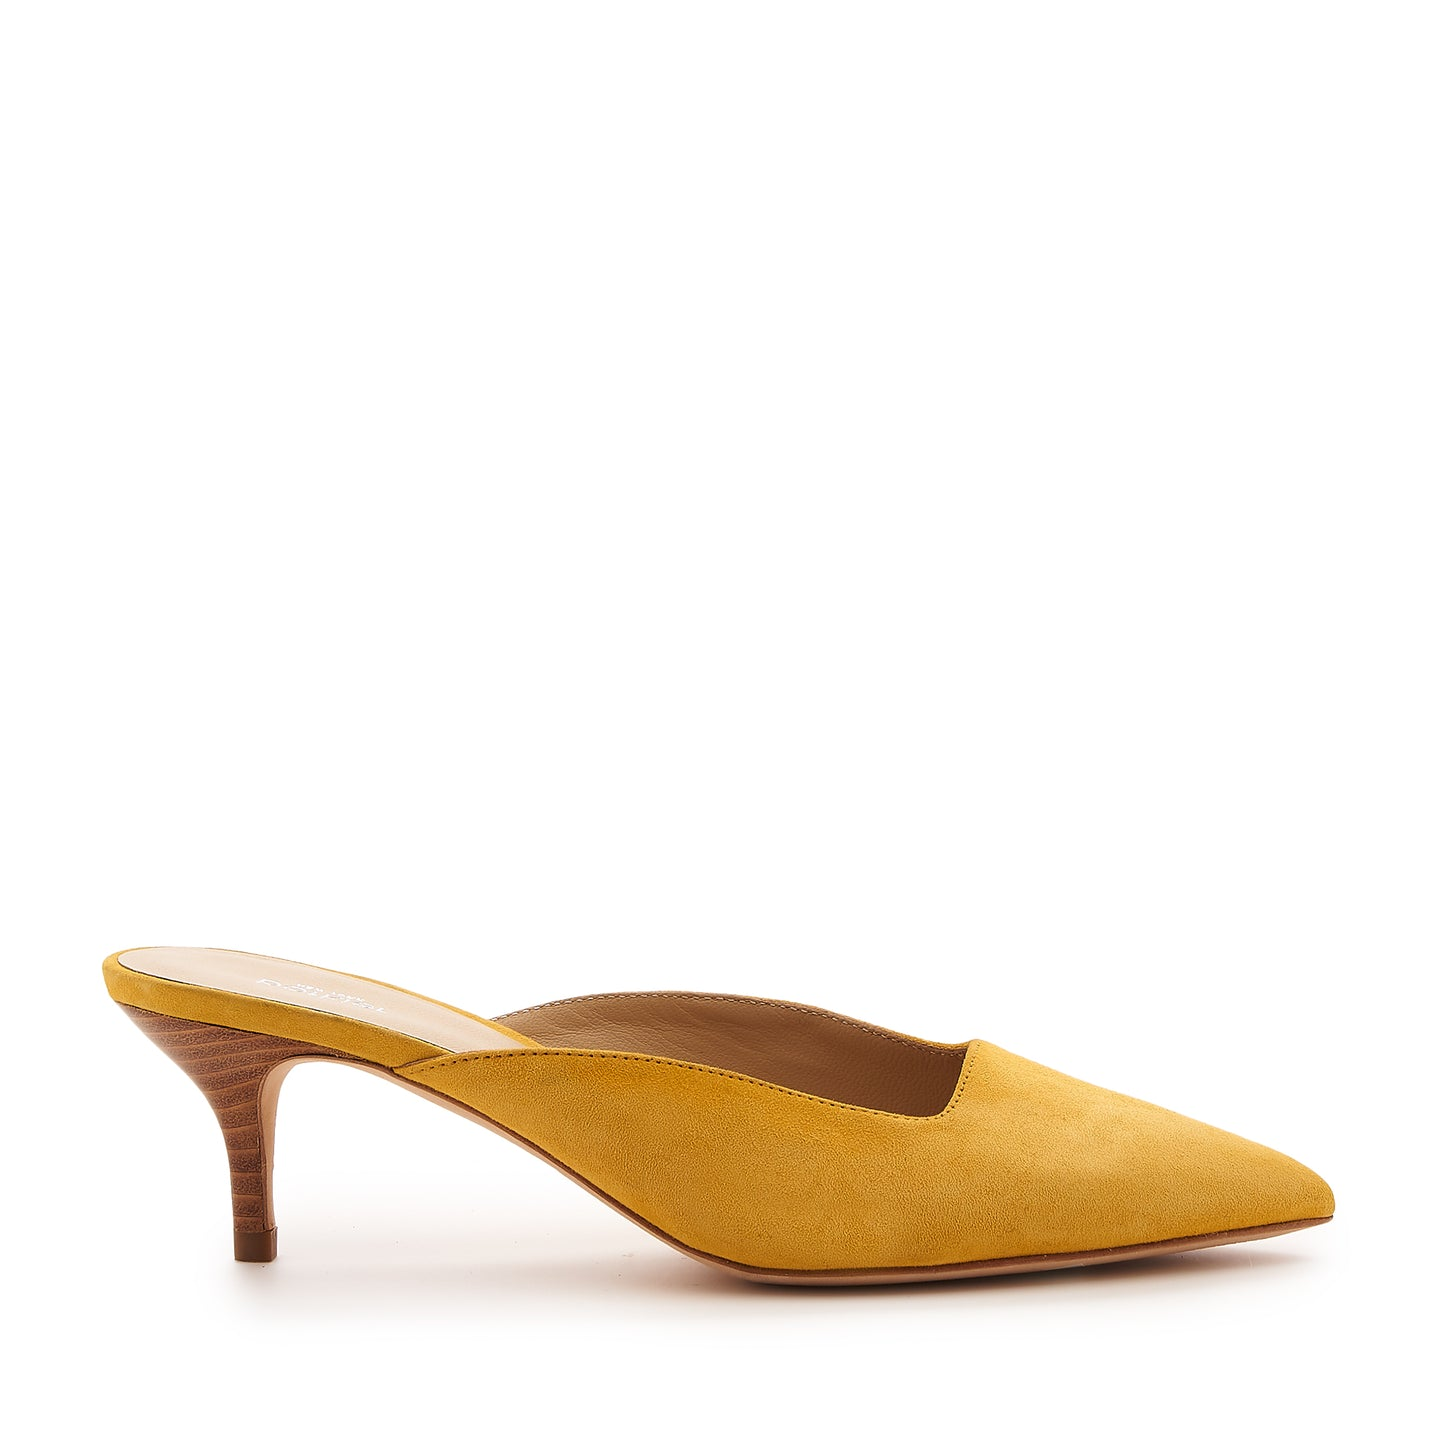 botkier perry kitten heel pointed toe mule in sunshine yellow